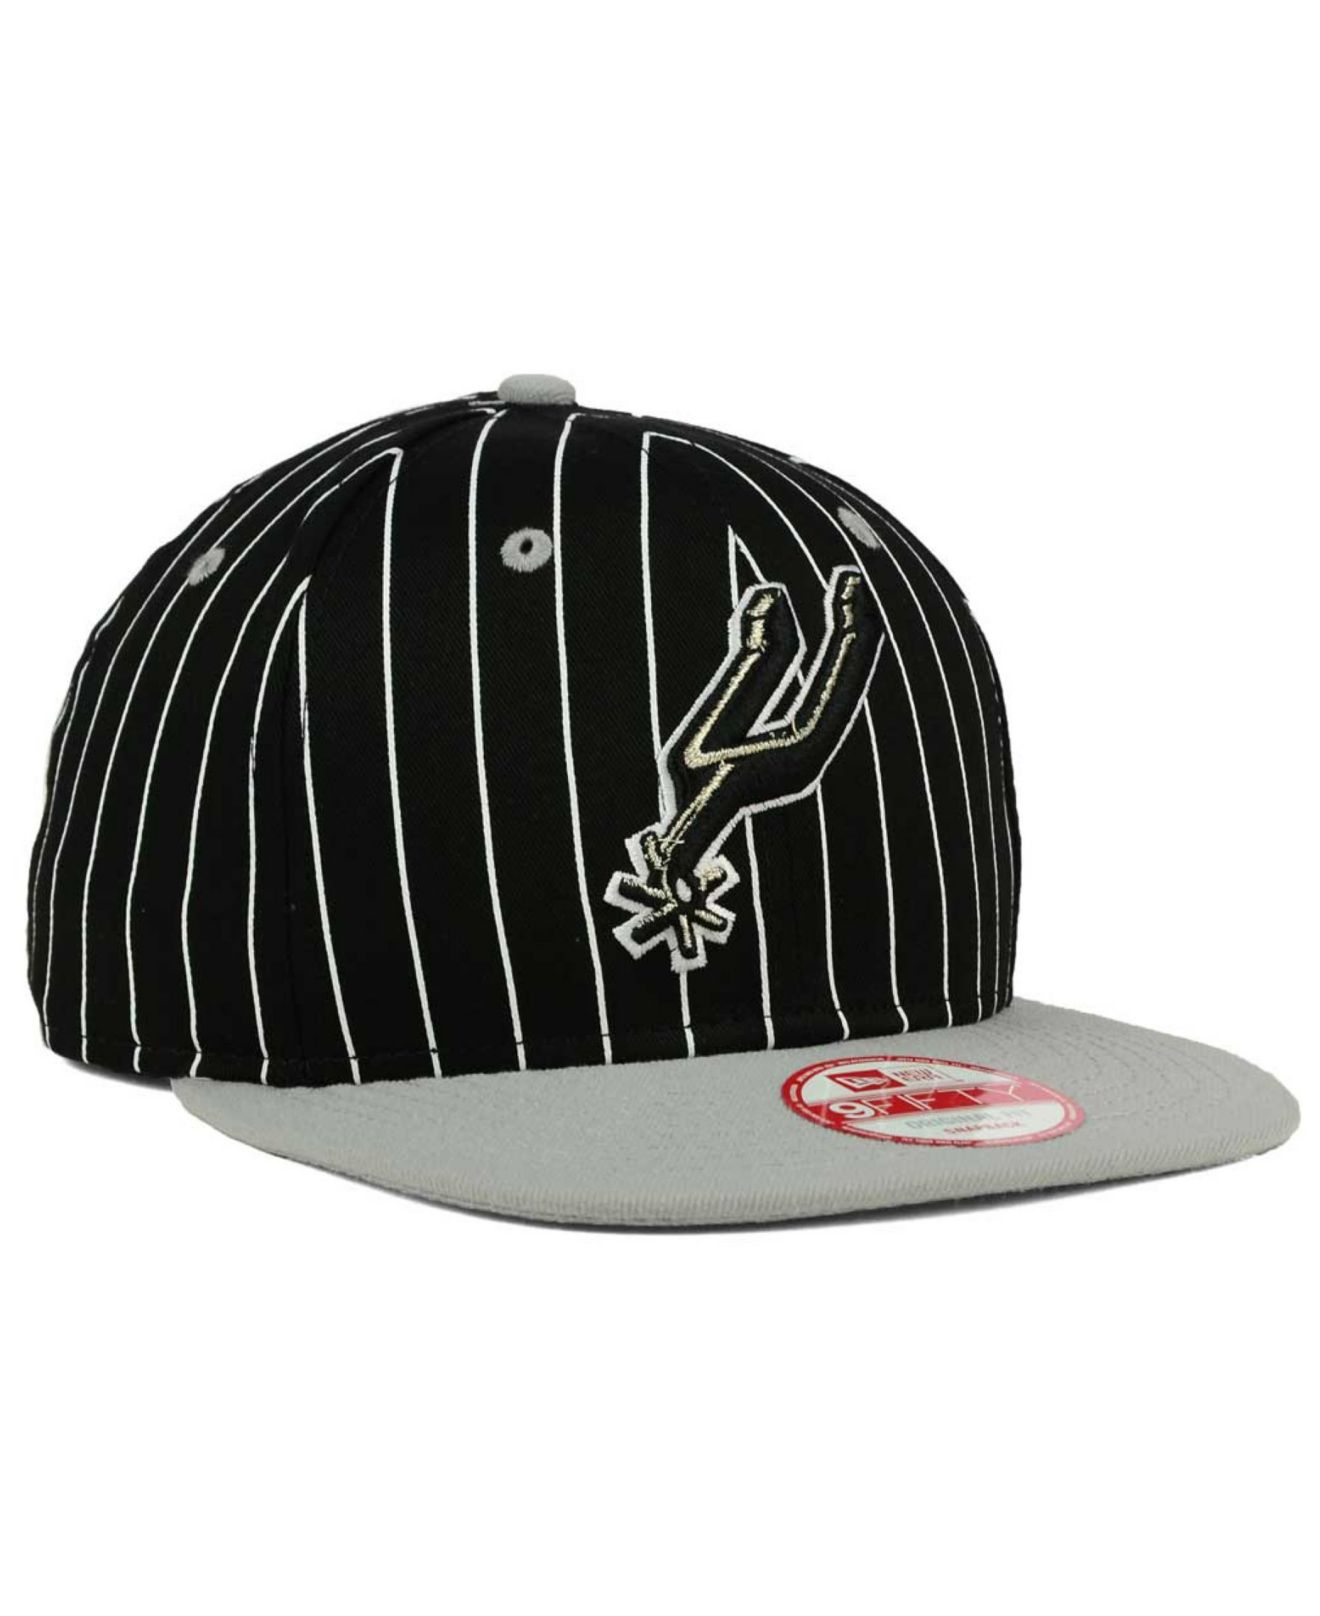 newest collection e38ba 2a1a7 Lyst - KTZ San Antonio Spurs Vintage Pinstripe 9fifty Snapback Cap ...